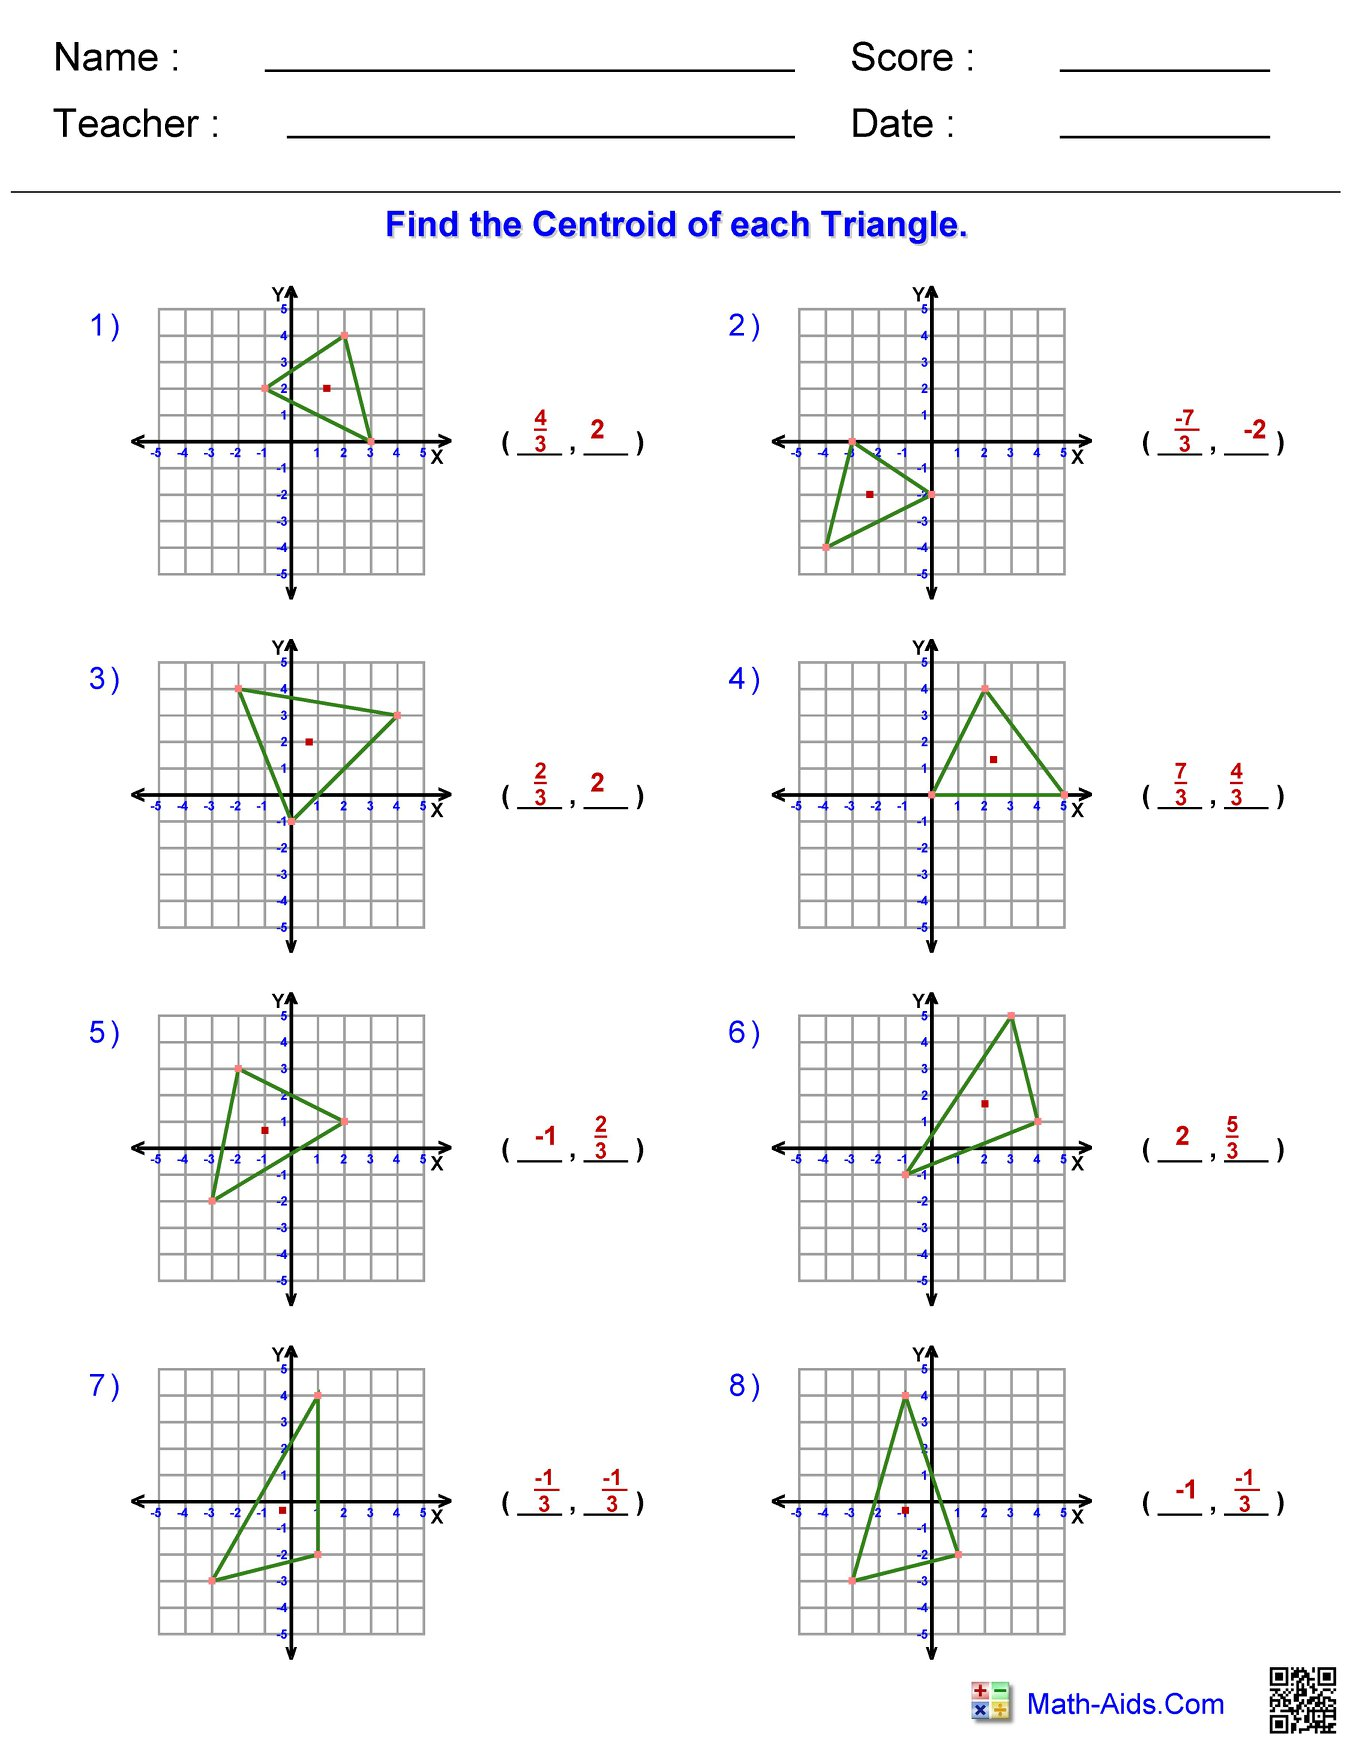 Triangle Centroid Worksheet 1 Answers Hoeden At Home